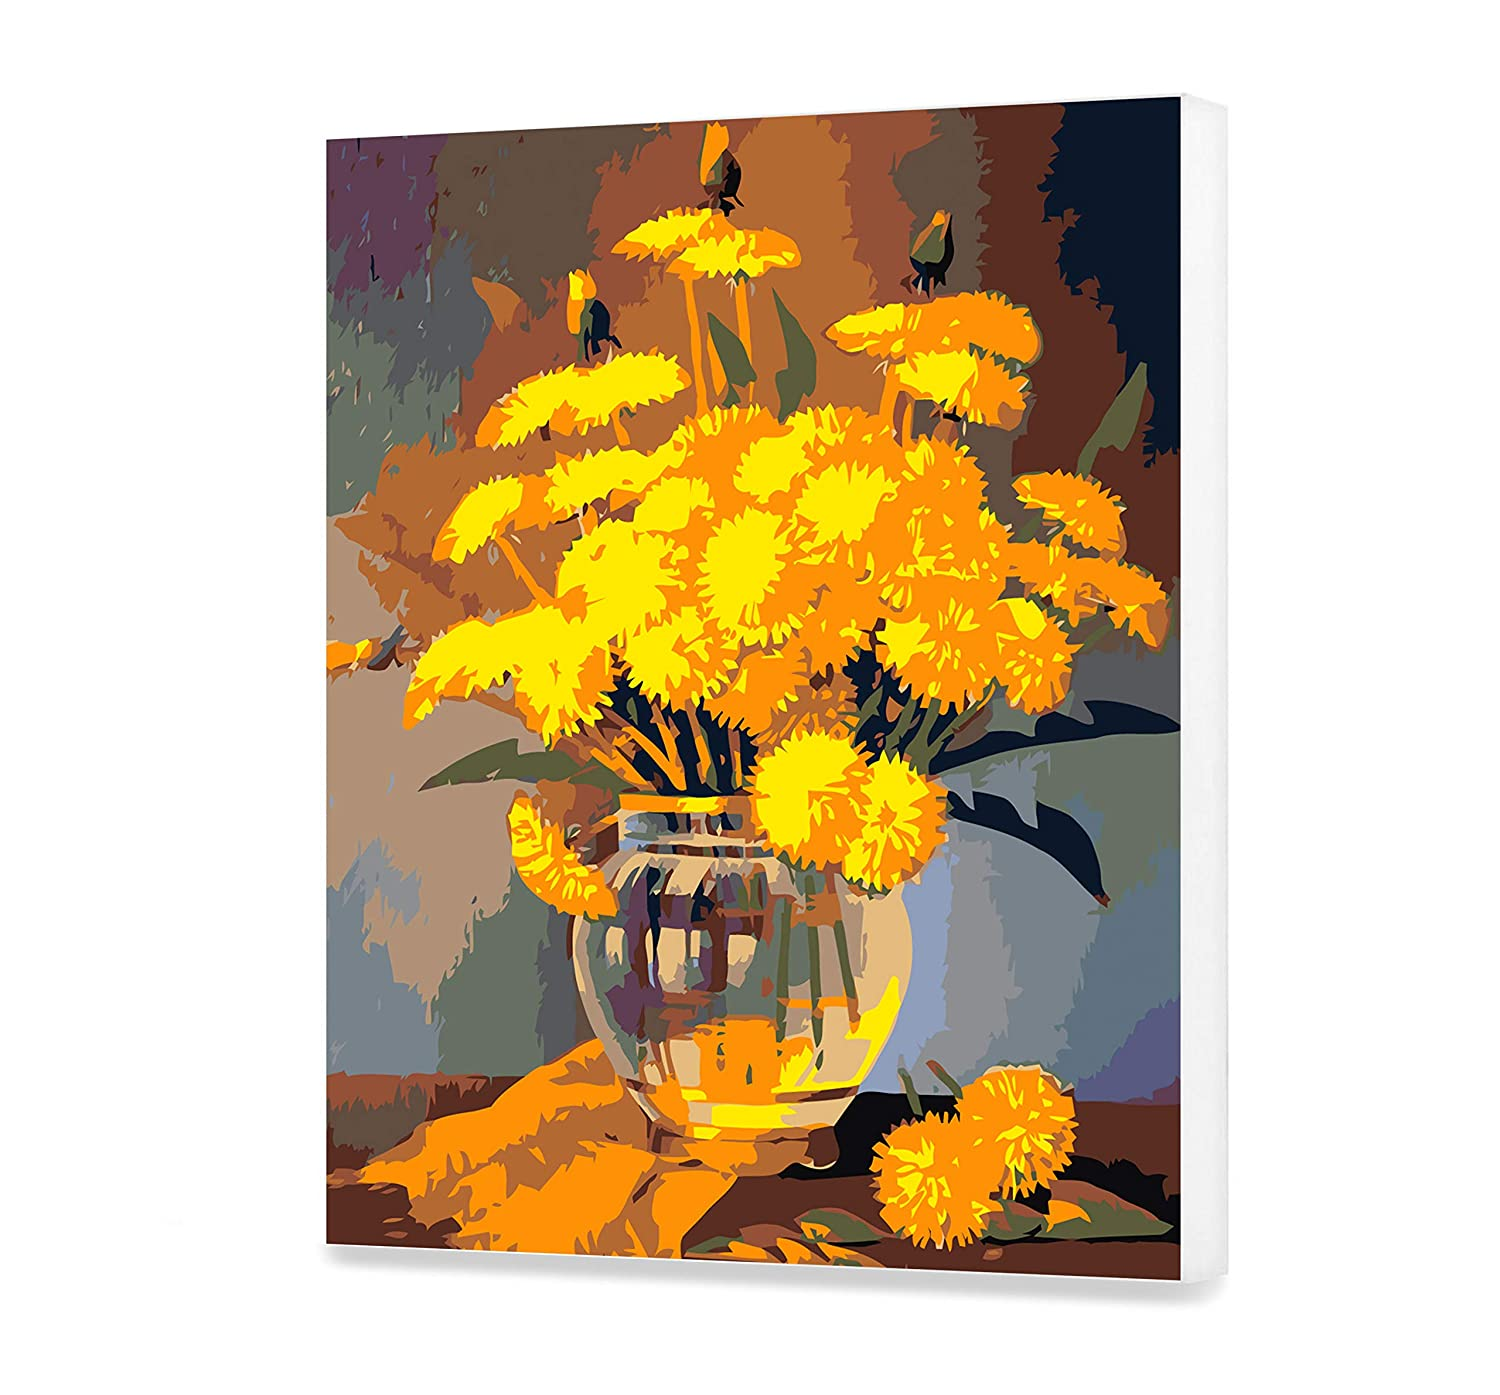 Dandelions Paint on Canvas HandMade Still Life DIY Set Painting by Numbers Floral Picture with Unique Design Flowers Paint by Numbers Best Gift for Adult